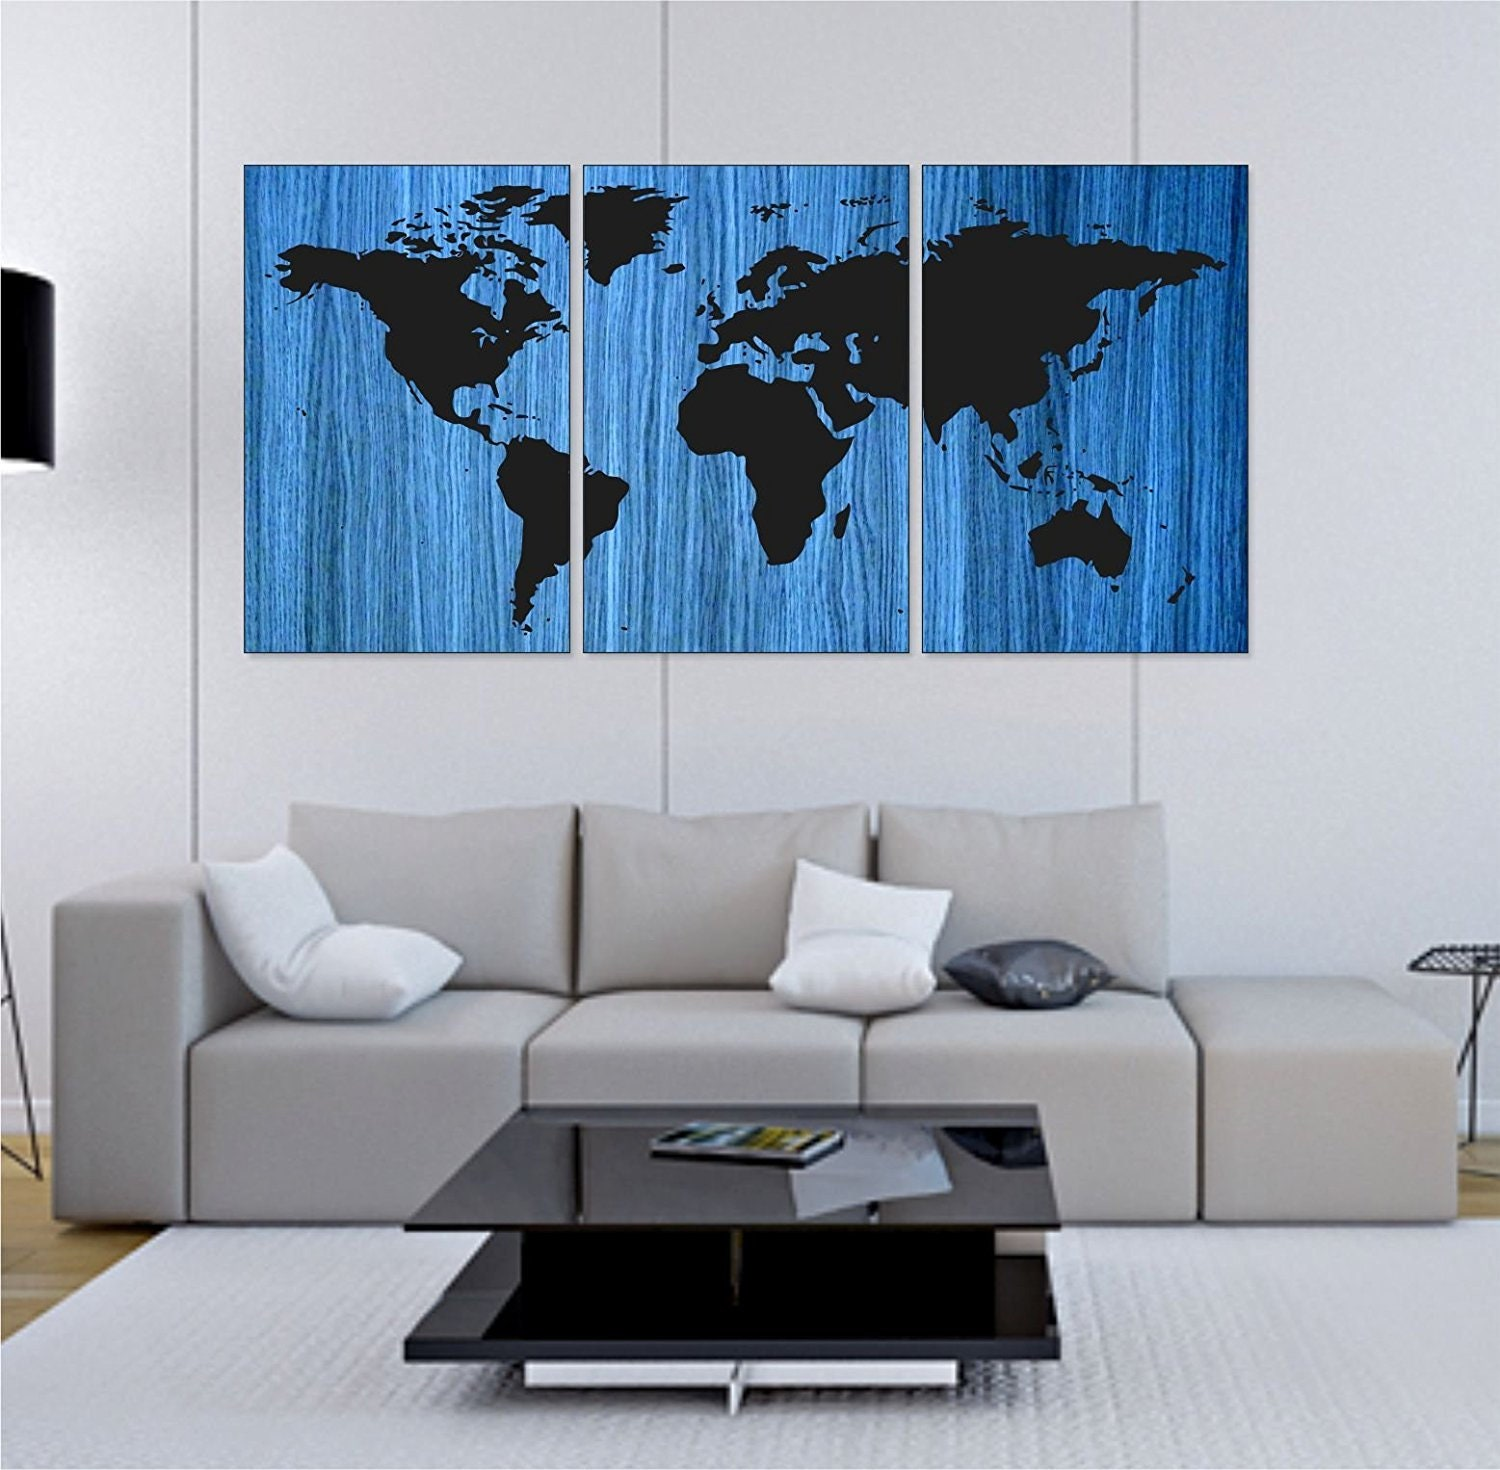 World map wall art map handmade wall painting on wood wall world map wall art map handmade wall painting on wood wall decor total size 30x 60 3 panels 30x20 each gumiabroncs Images